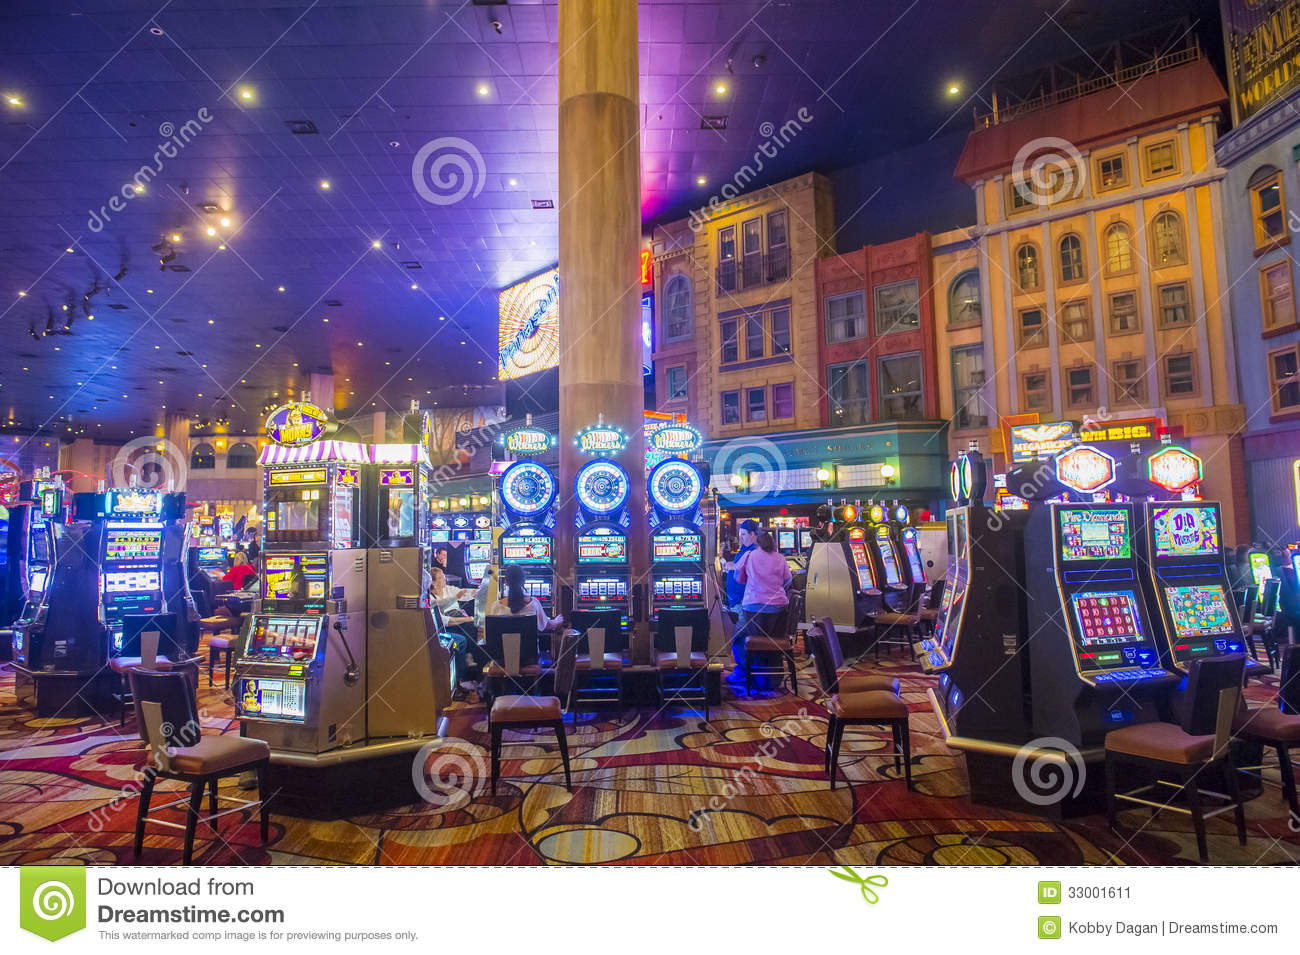 ... new-york-new-york-hotel-casino-february-hotel-simulates-real-new-york